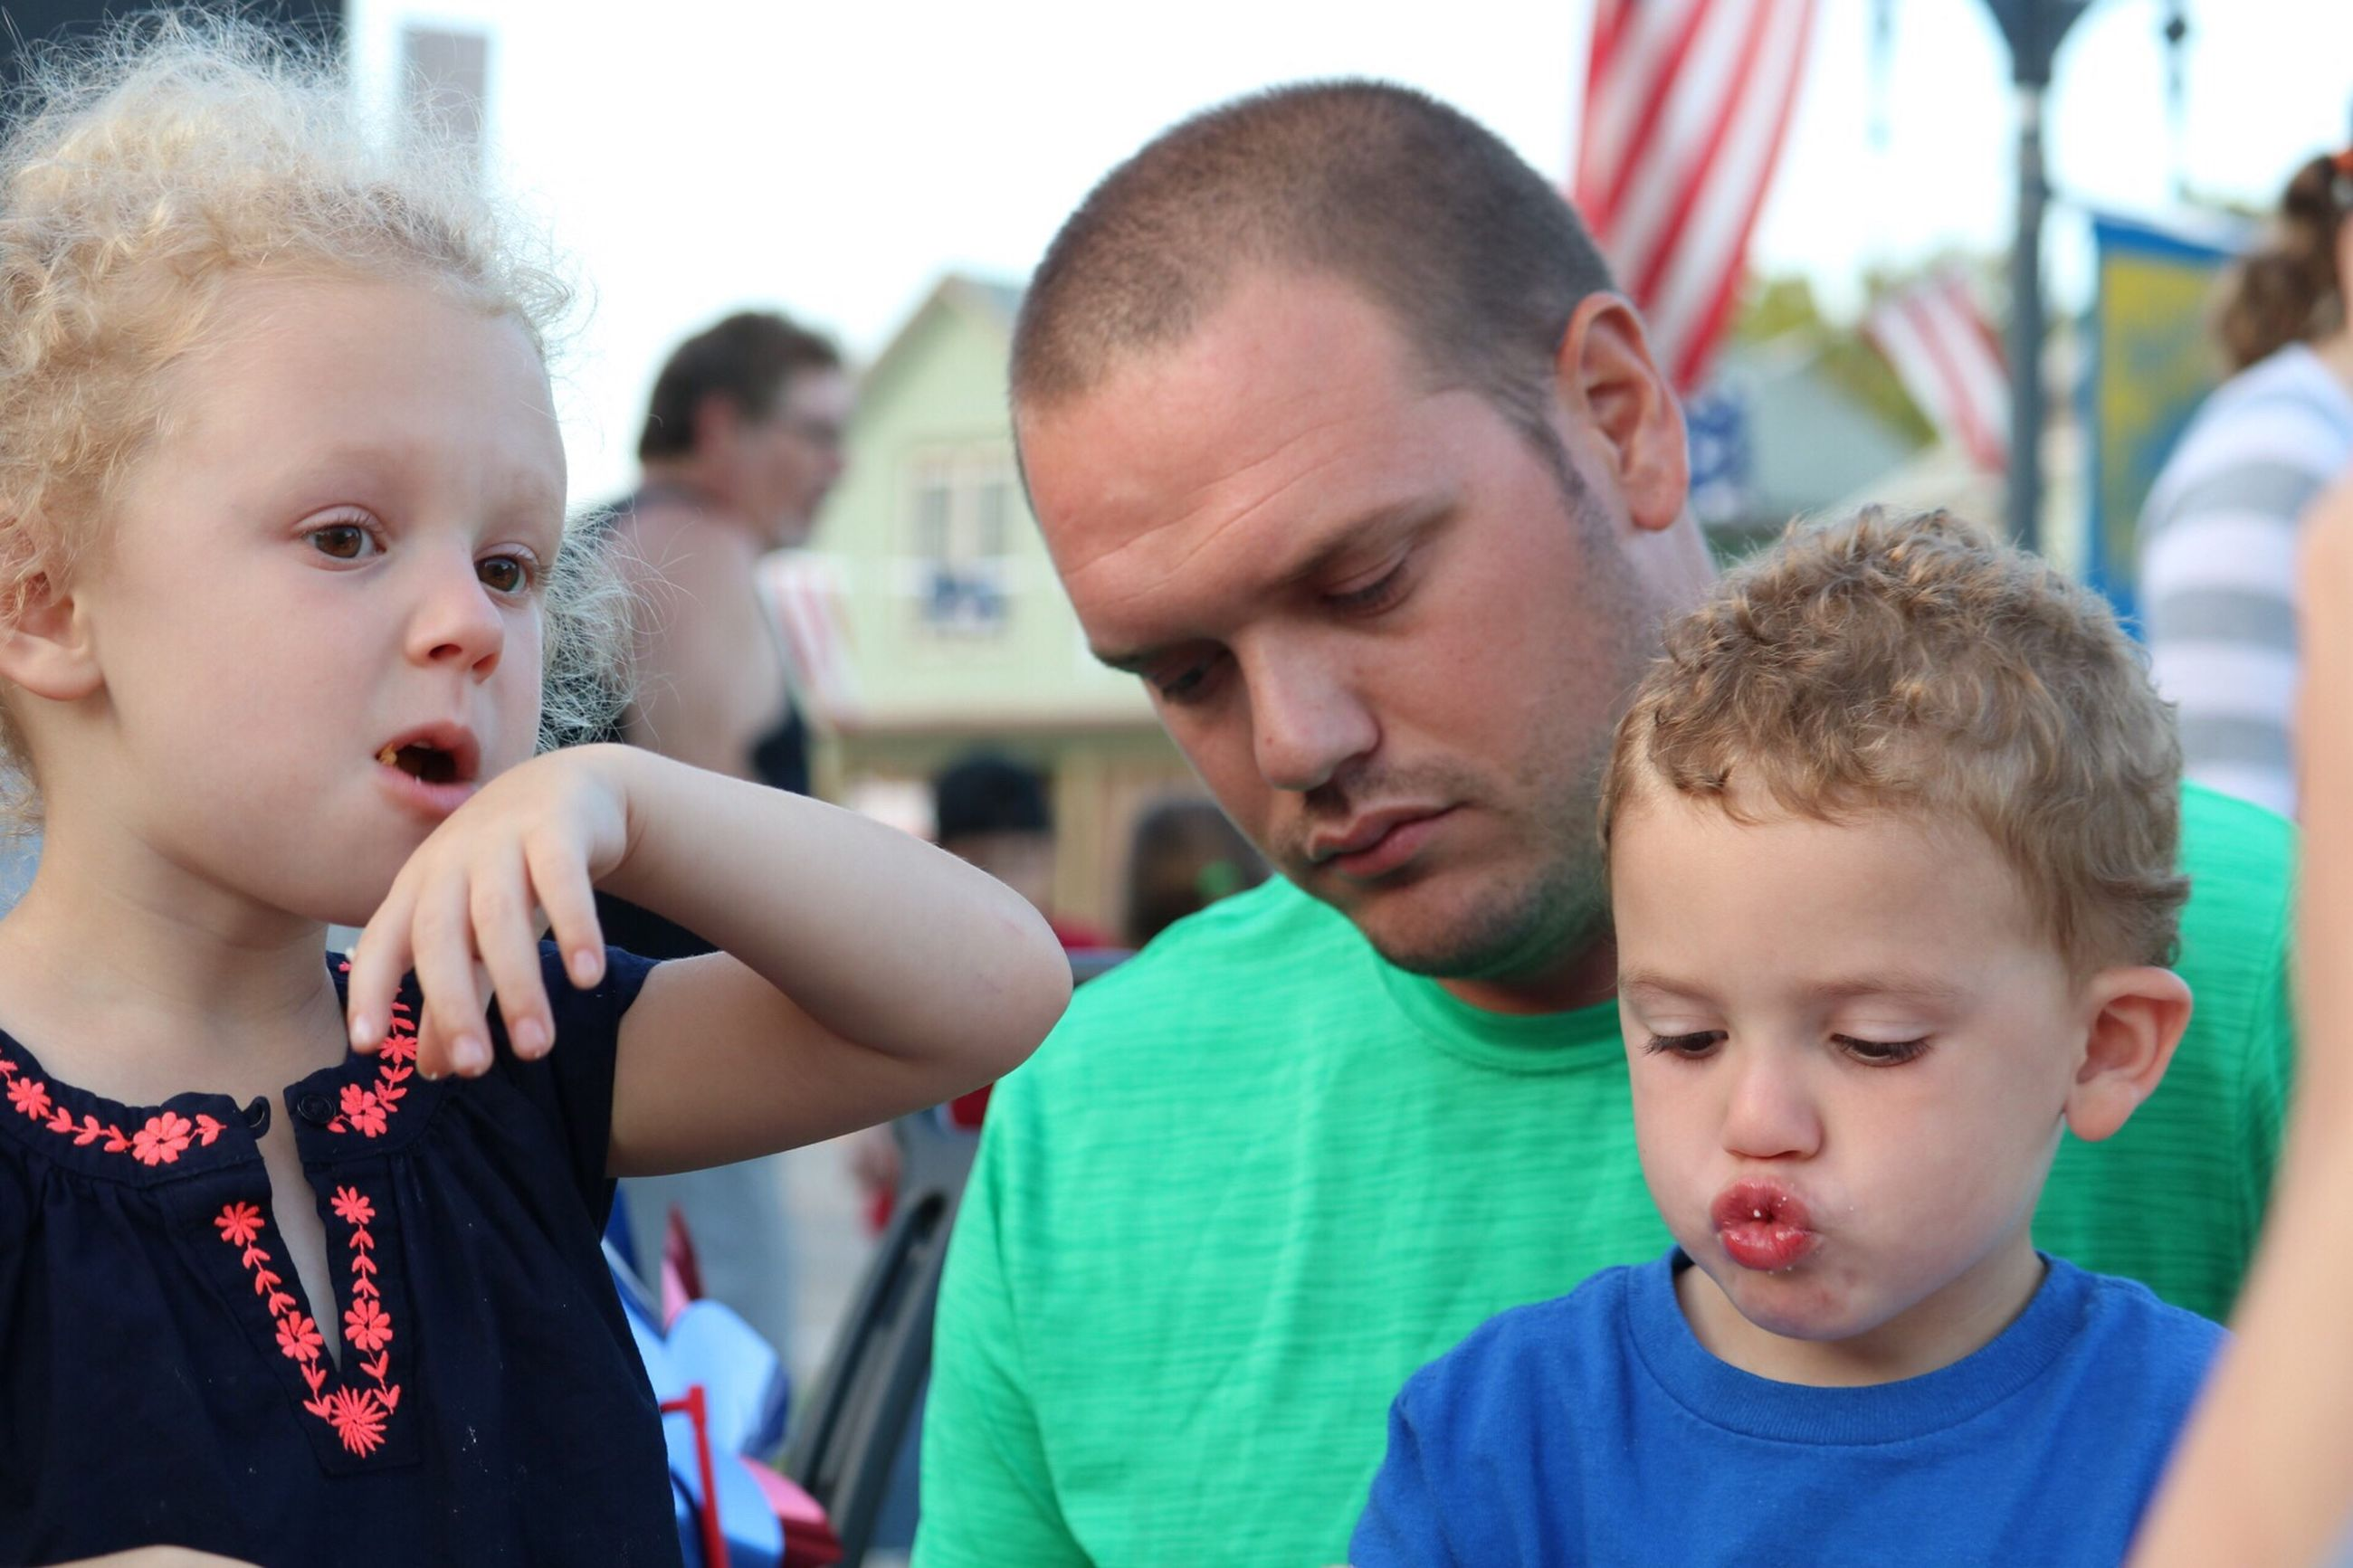 childhood, father, mid adult men, elementary age, real people, boys, mid adult, son, family, family with one child, innocence, incidental people, focus on foreground, togetherness, lifestyles, headshot, front view, girls, daughter, cute, day, men, leisure activity, bonding, standing, close-up, outdoors, young adult